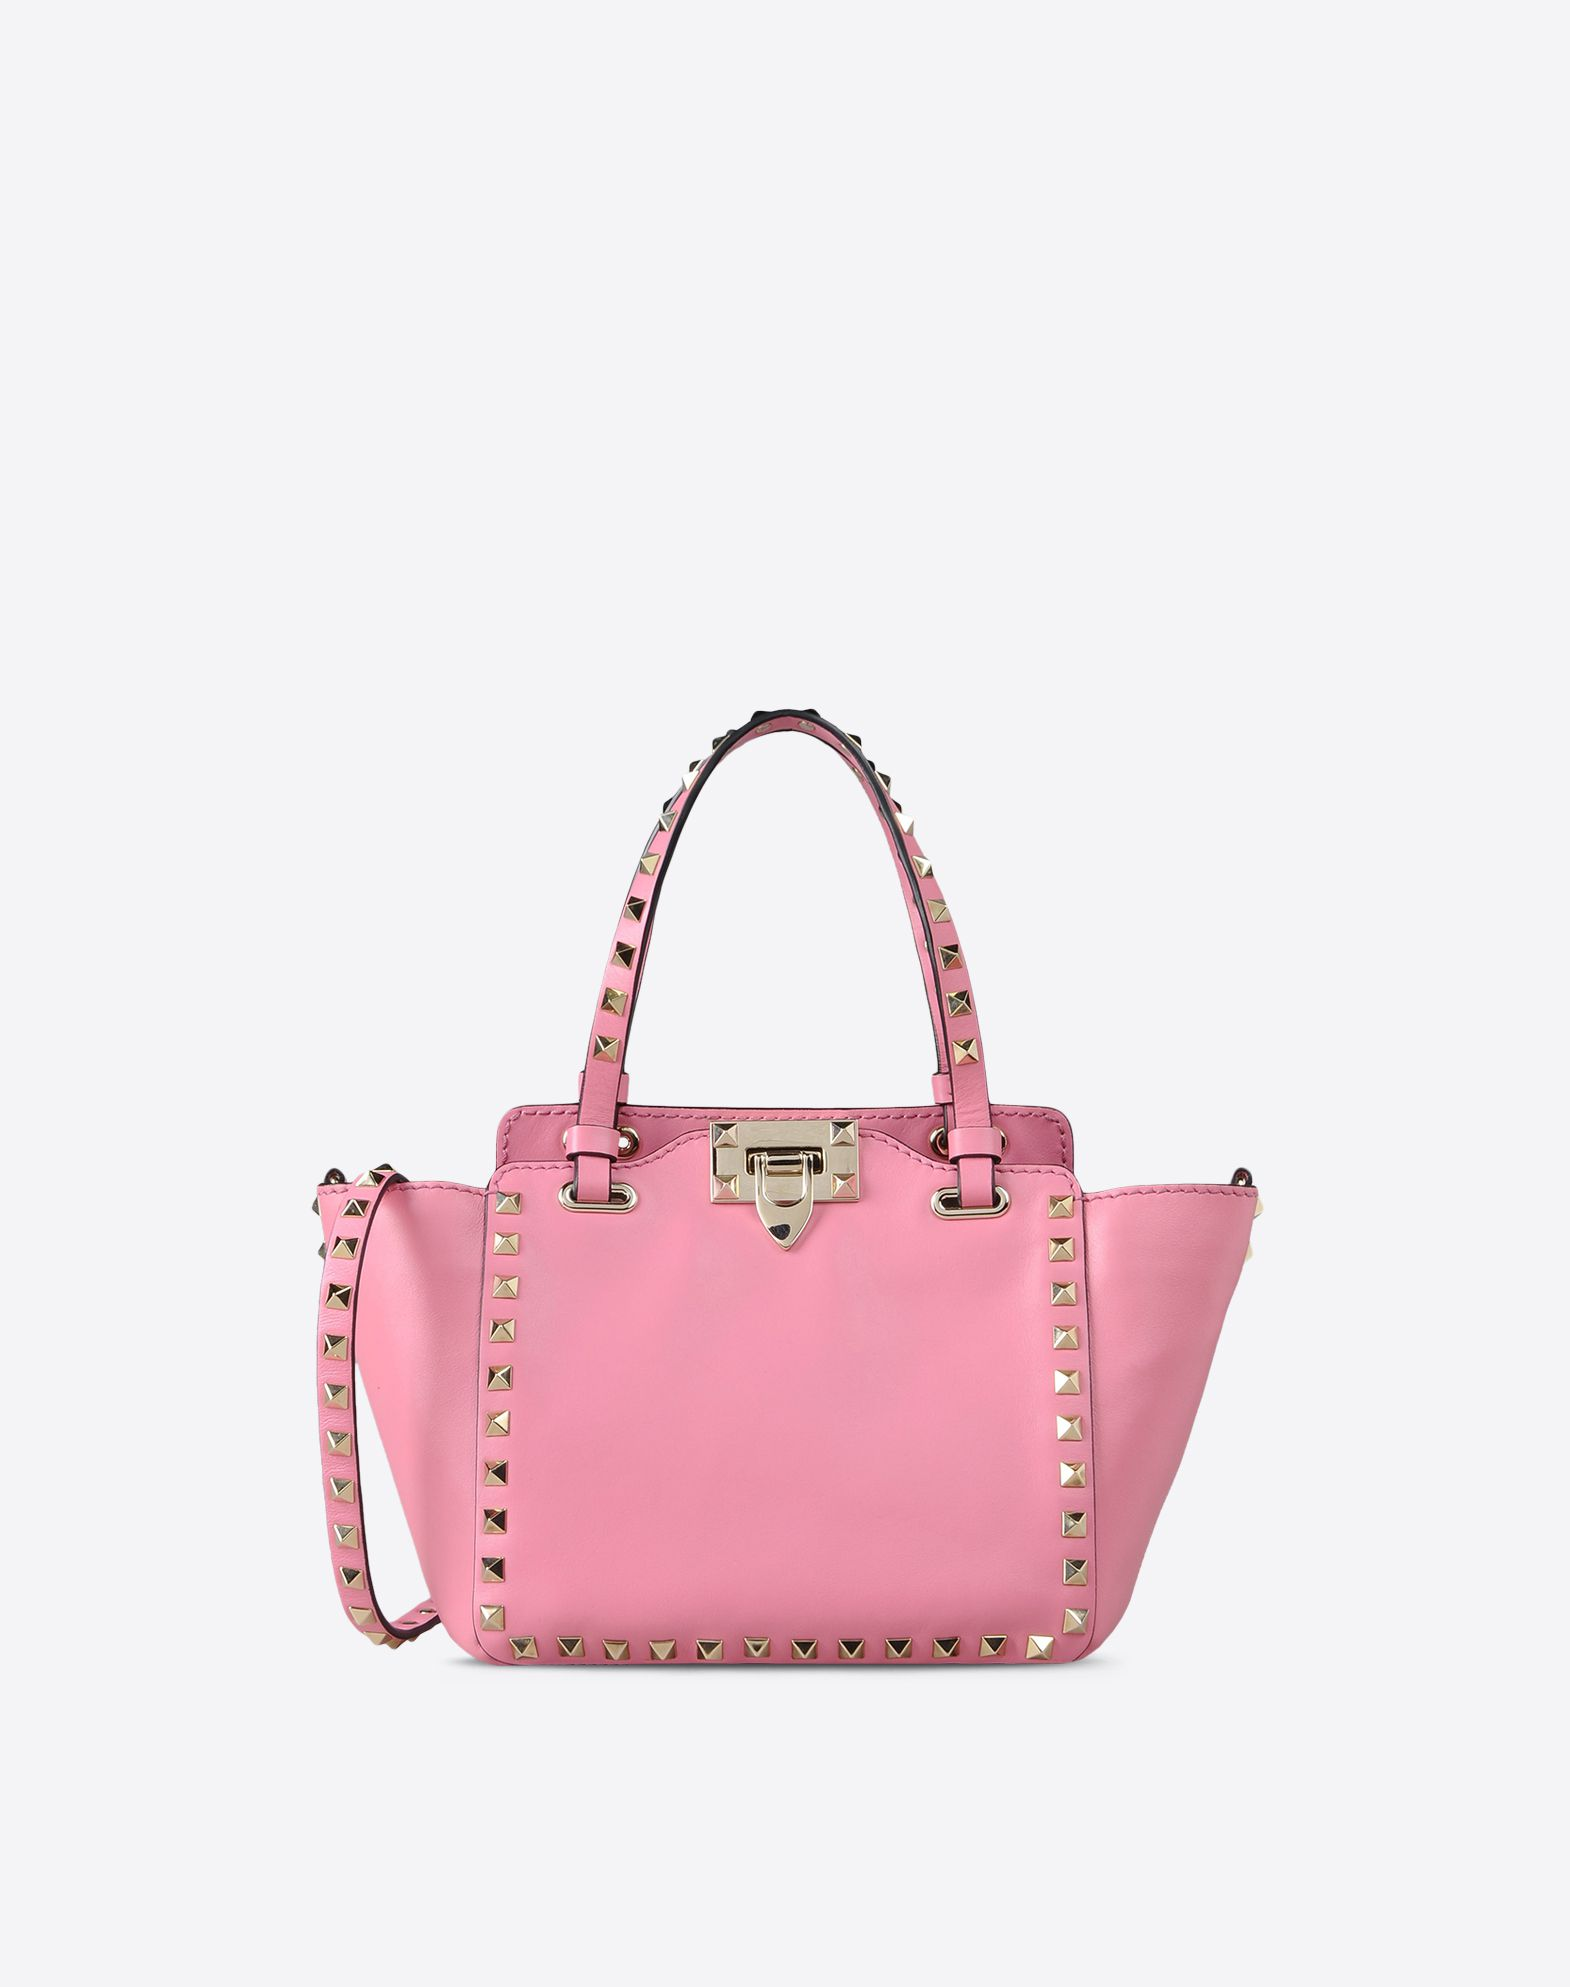 Valentino Garavani The Rockstud Leather Trapeze Bag - Blush Valentino cVcPvB